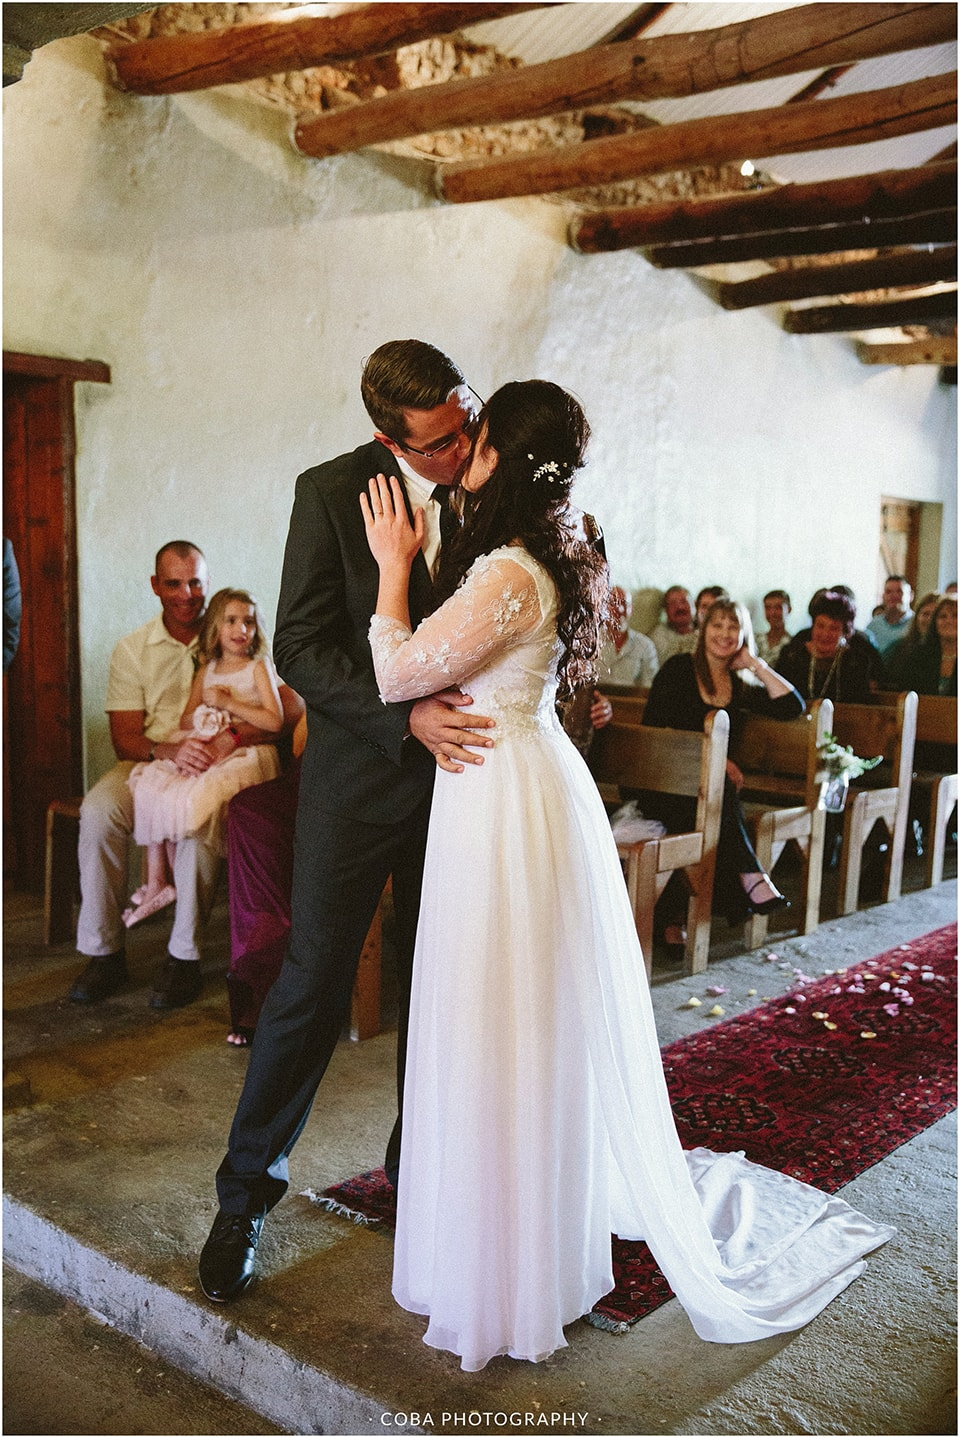 Carlo & Nicolette - Langkloof Roses - Coba Photography (106)